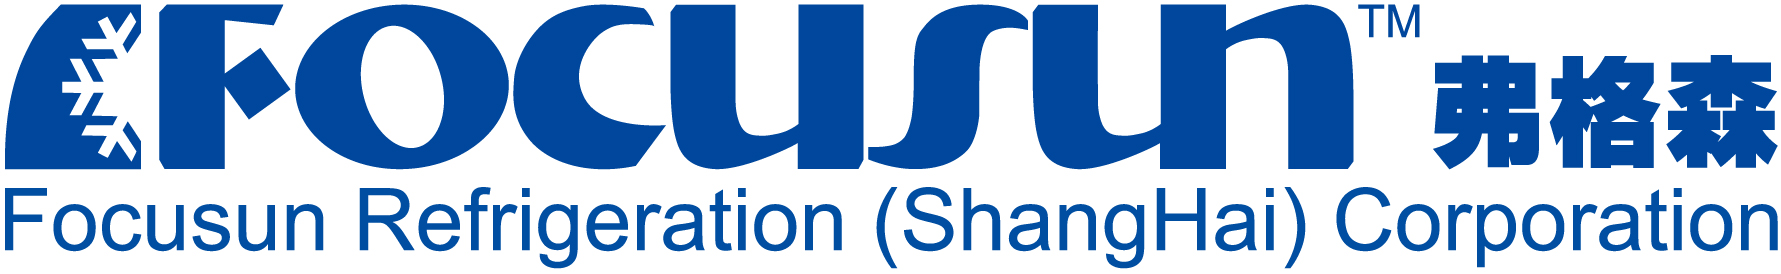 Focusun Refrigeration (Shanghai) Co., Ltd. logo